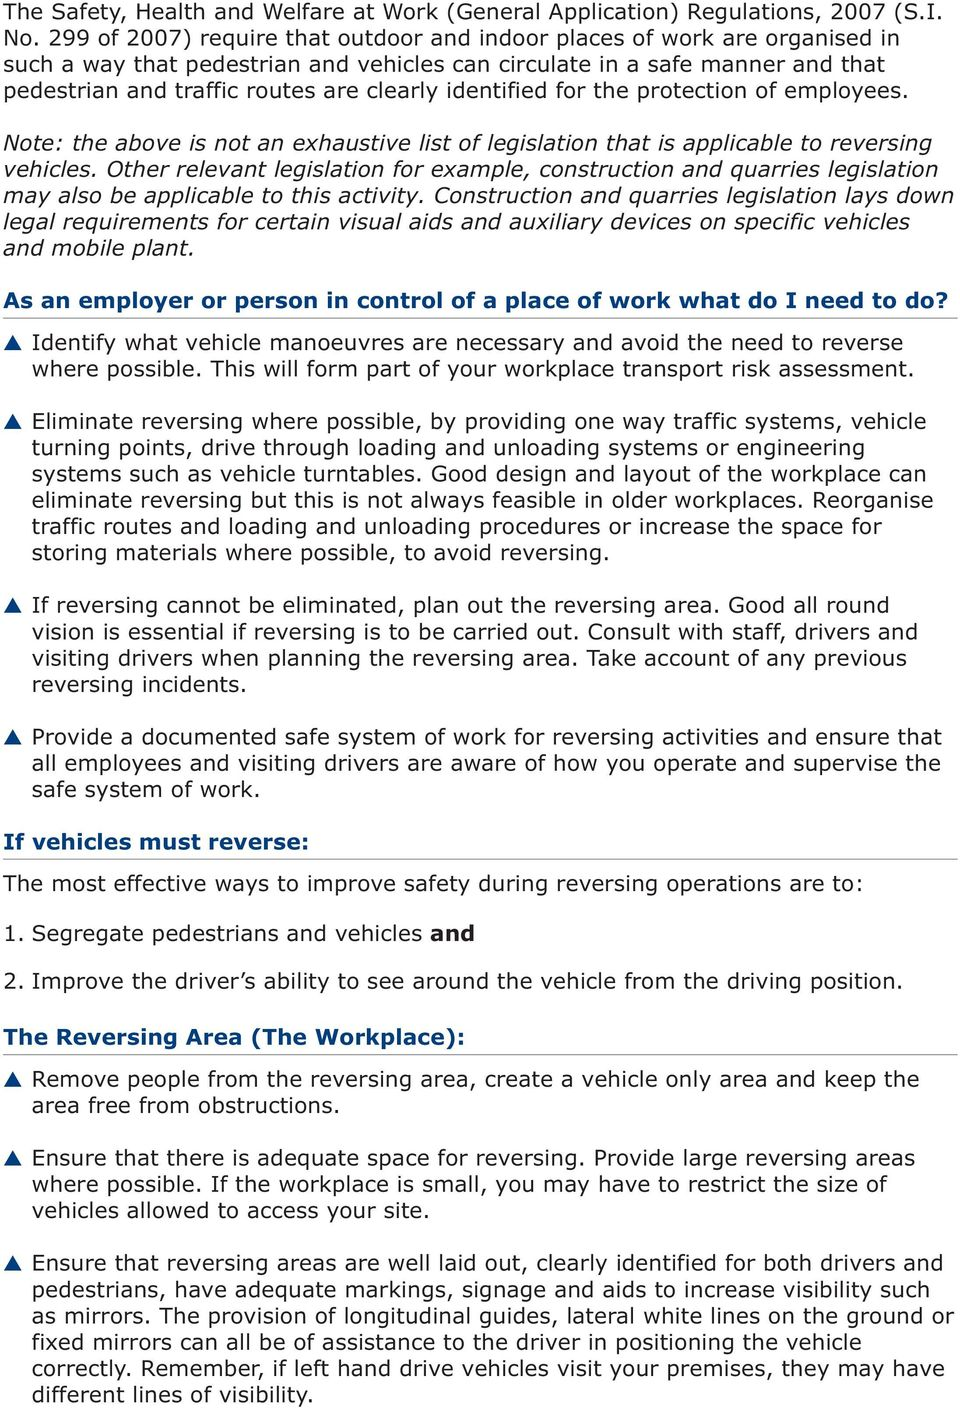 identified for the protection of employees. Note: the above is not an exhaustive list of legislation that is applicable to reversing vehicles.